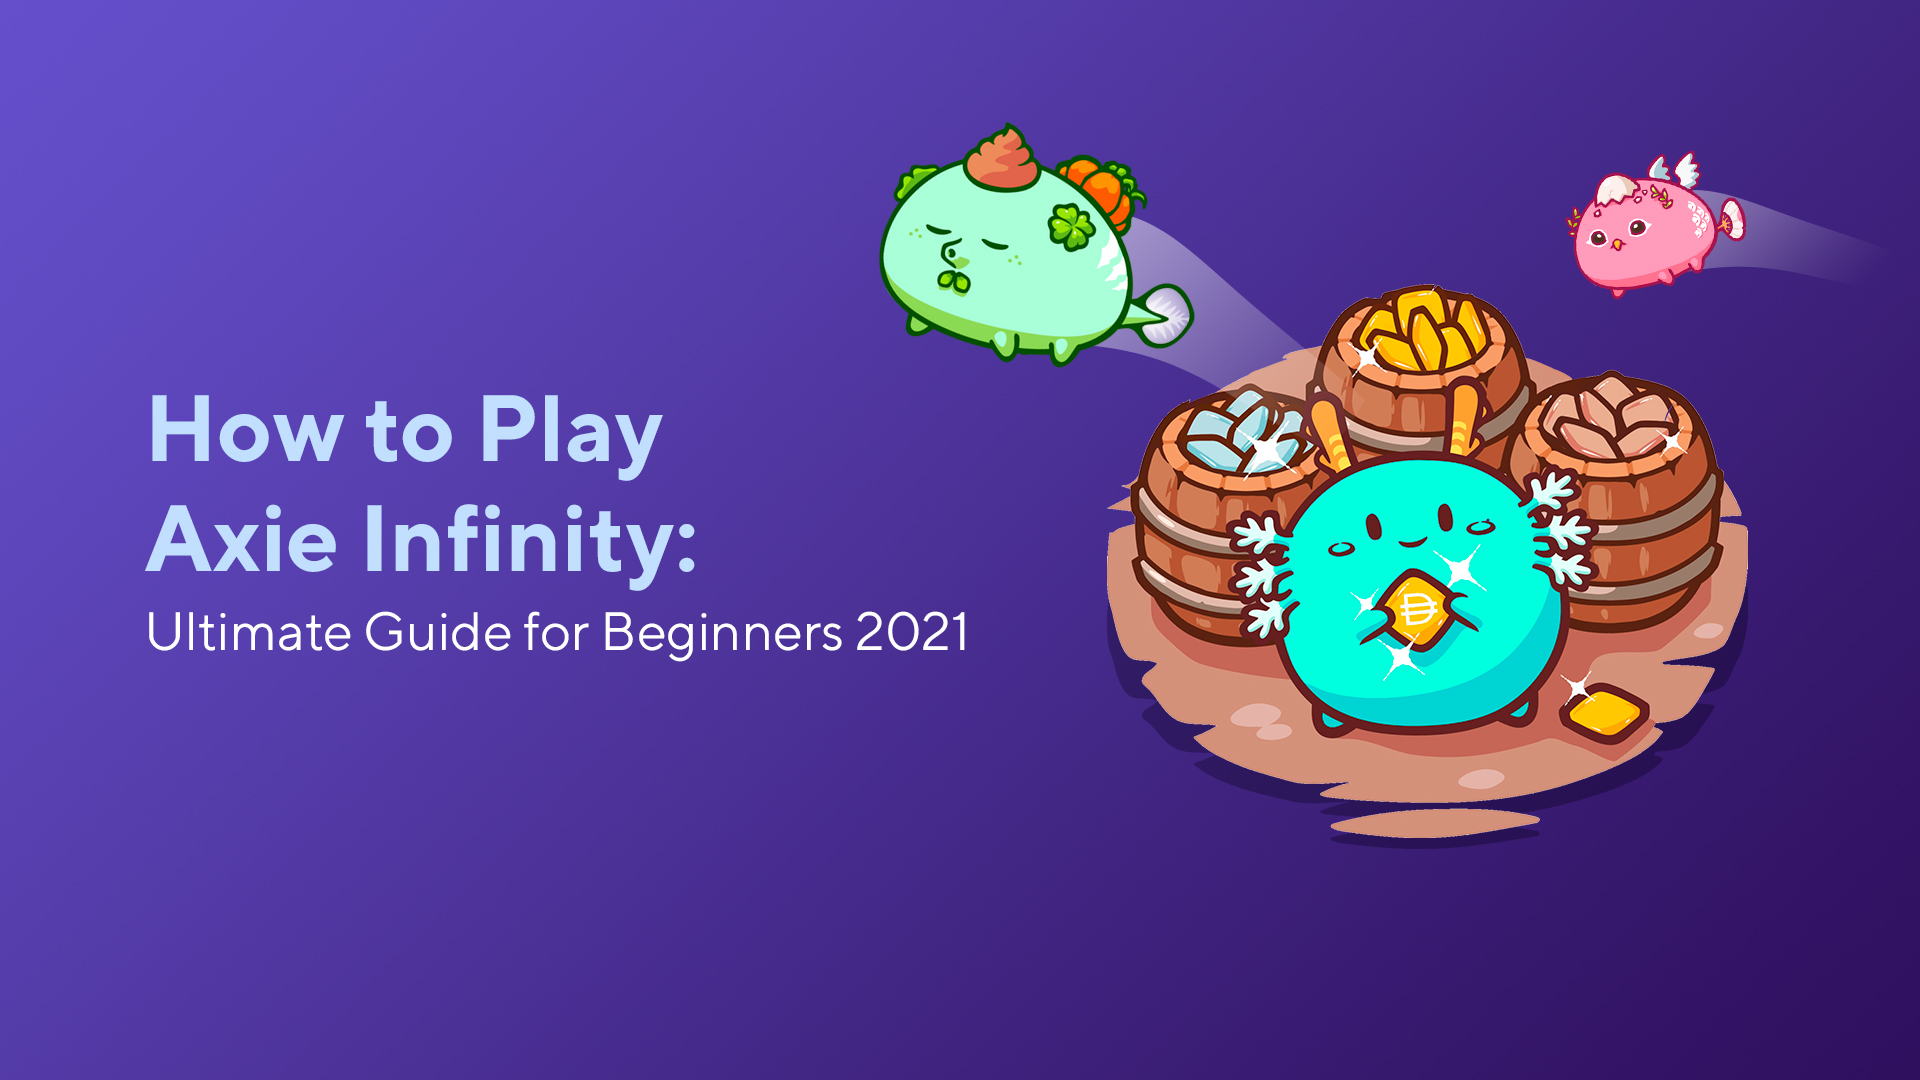 How to Play Axie Infinity: Ultimate Guide for Beginners 2021